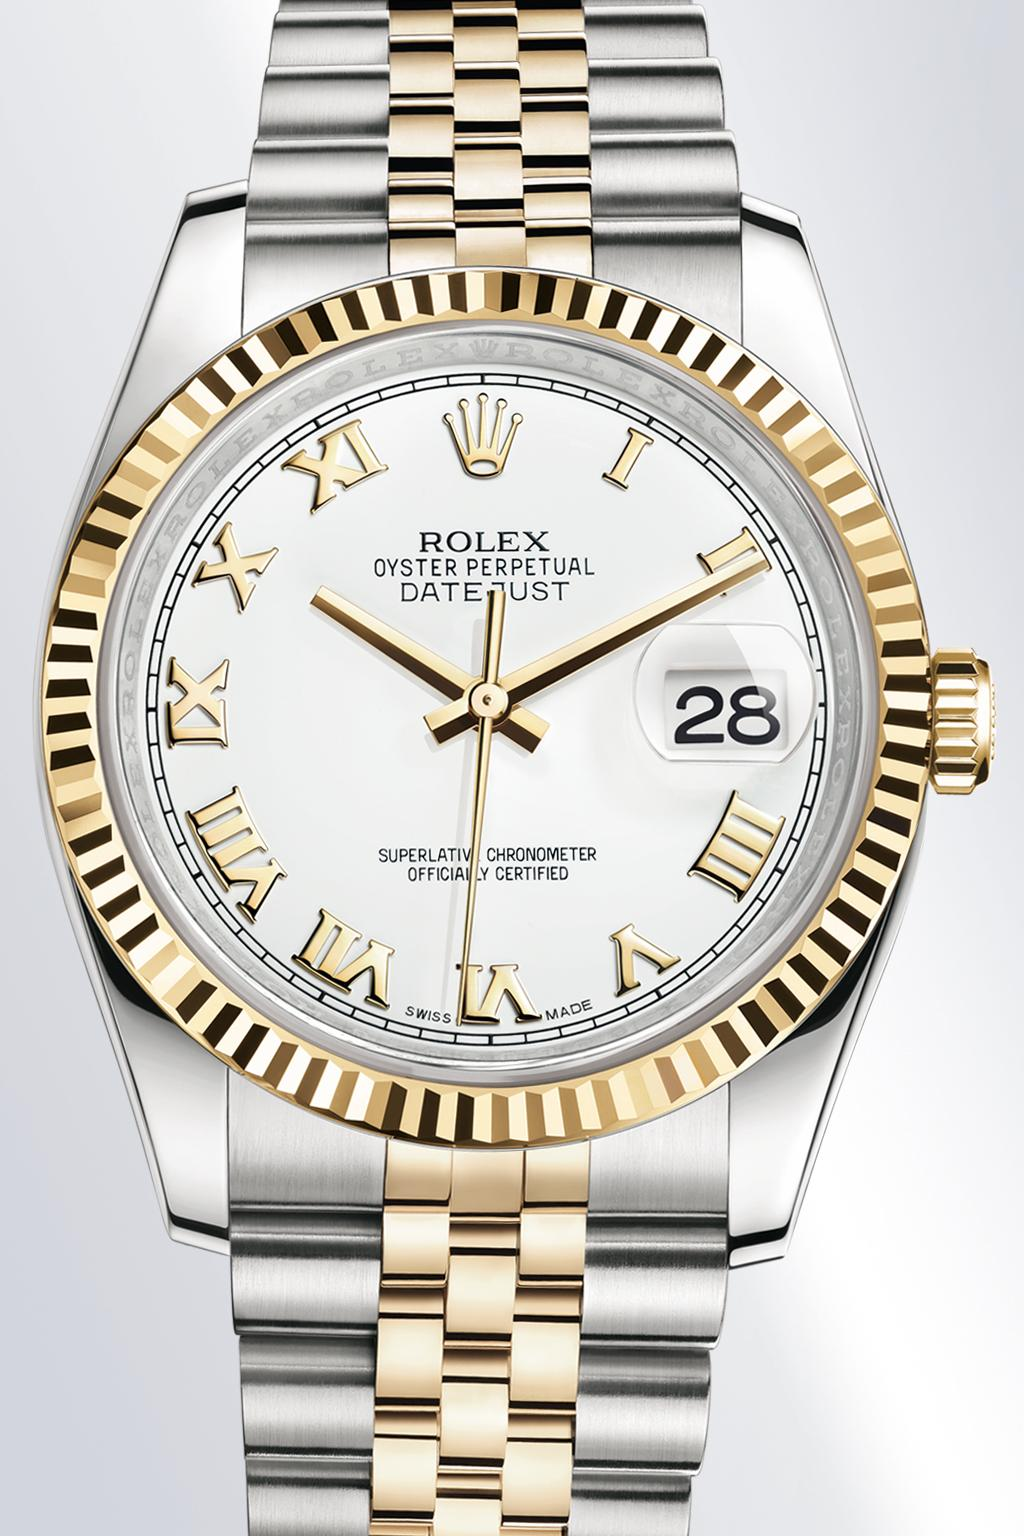 Style of the Datejust 36 THE CLASSIC WATCH OF REFERENCE The Datejust 36 is the modern archetype of the classic watch, thanks to aesthetics and functions that transcend changes in fashion.